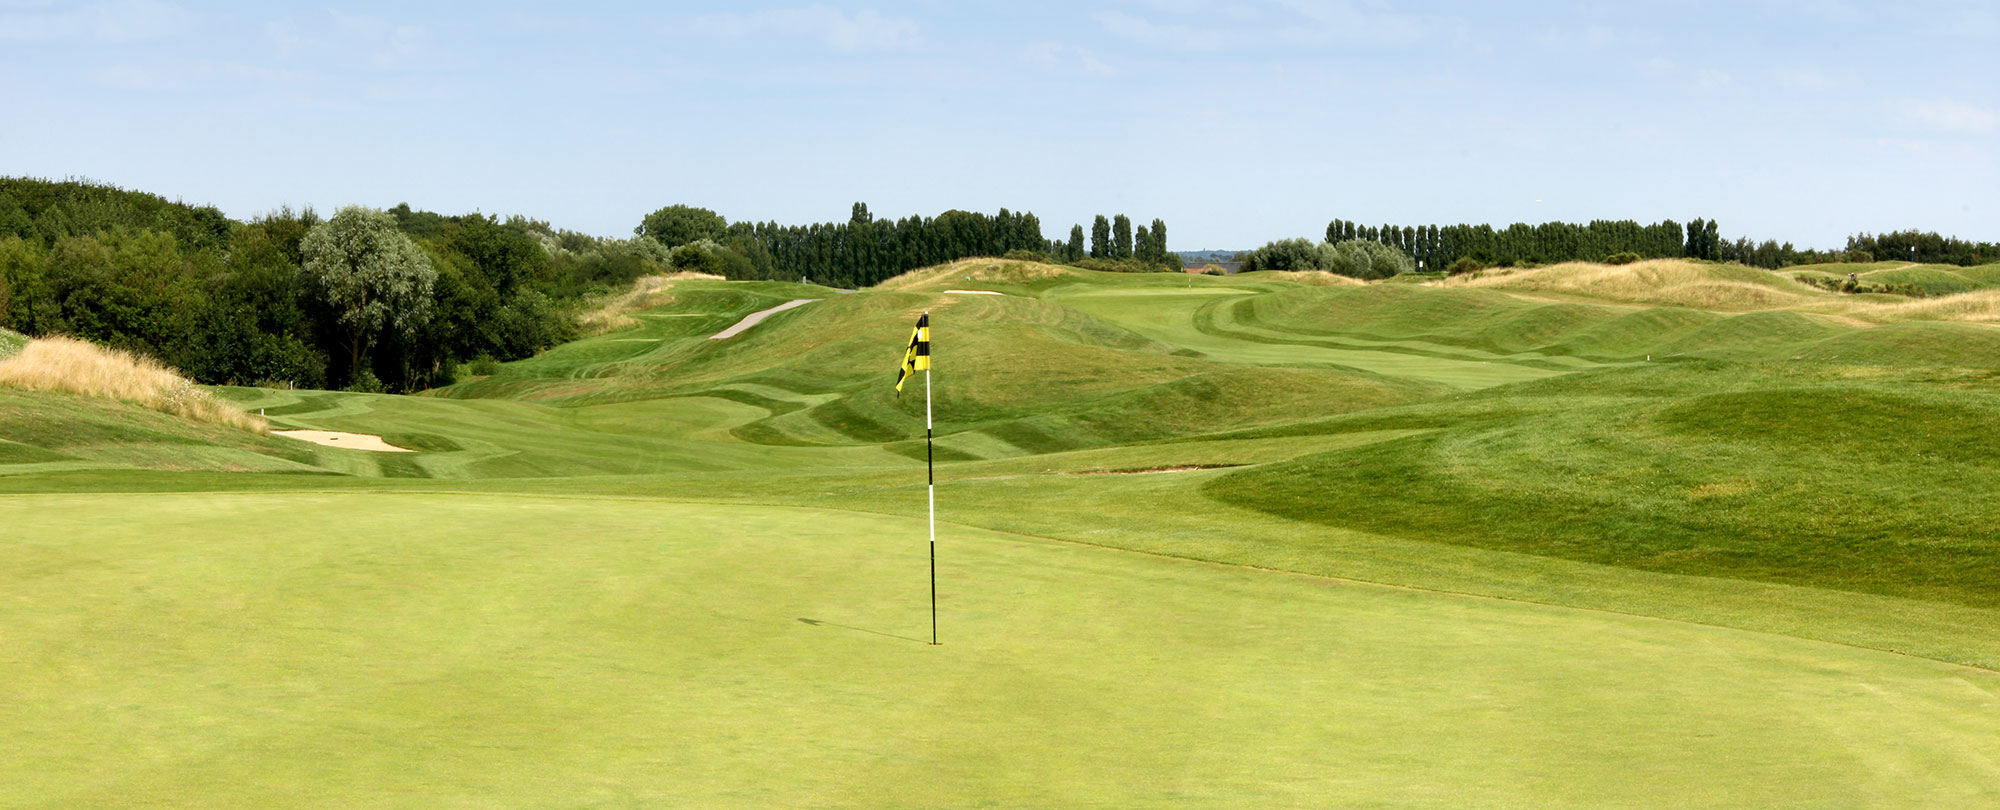 Aigle Course, Le Golf National Hotel